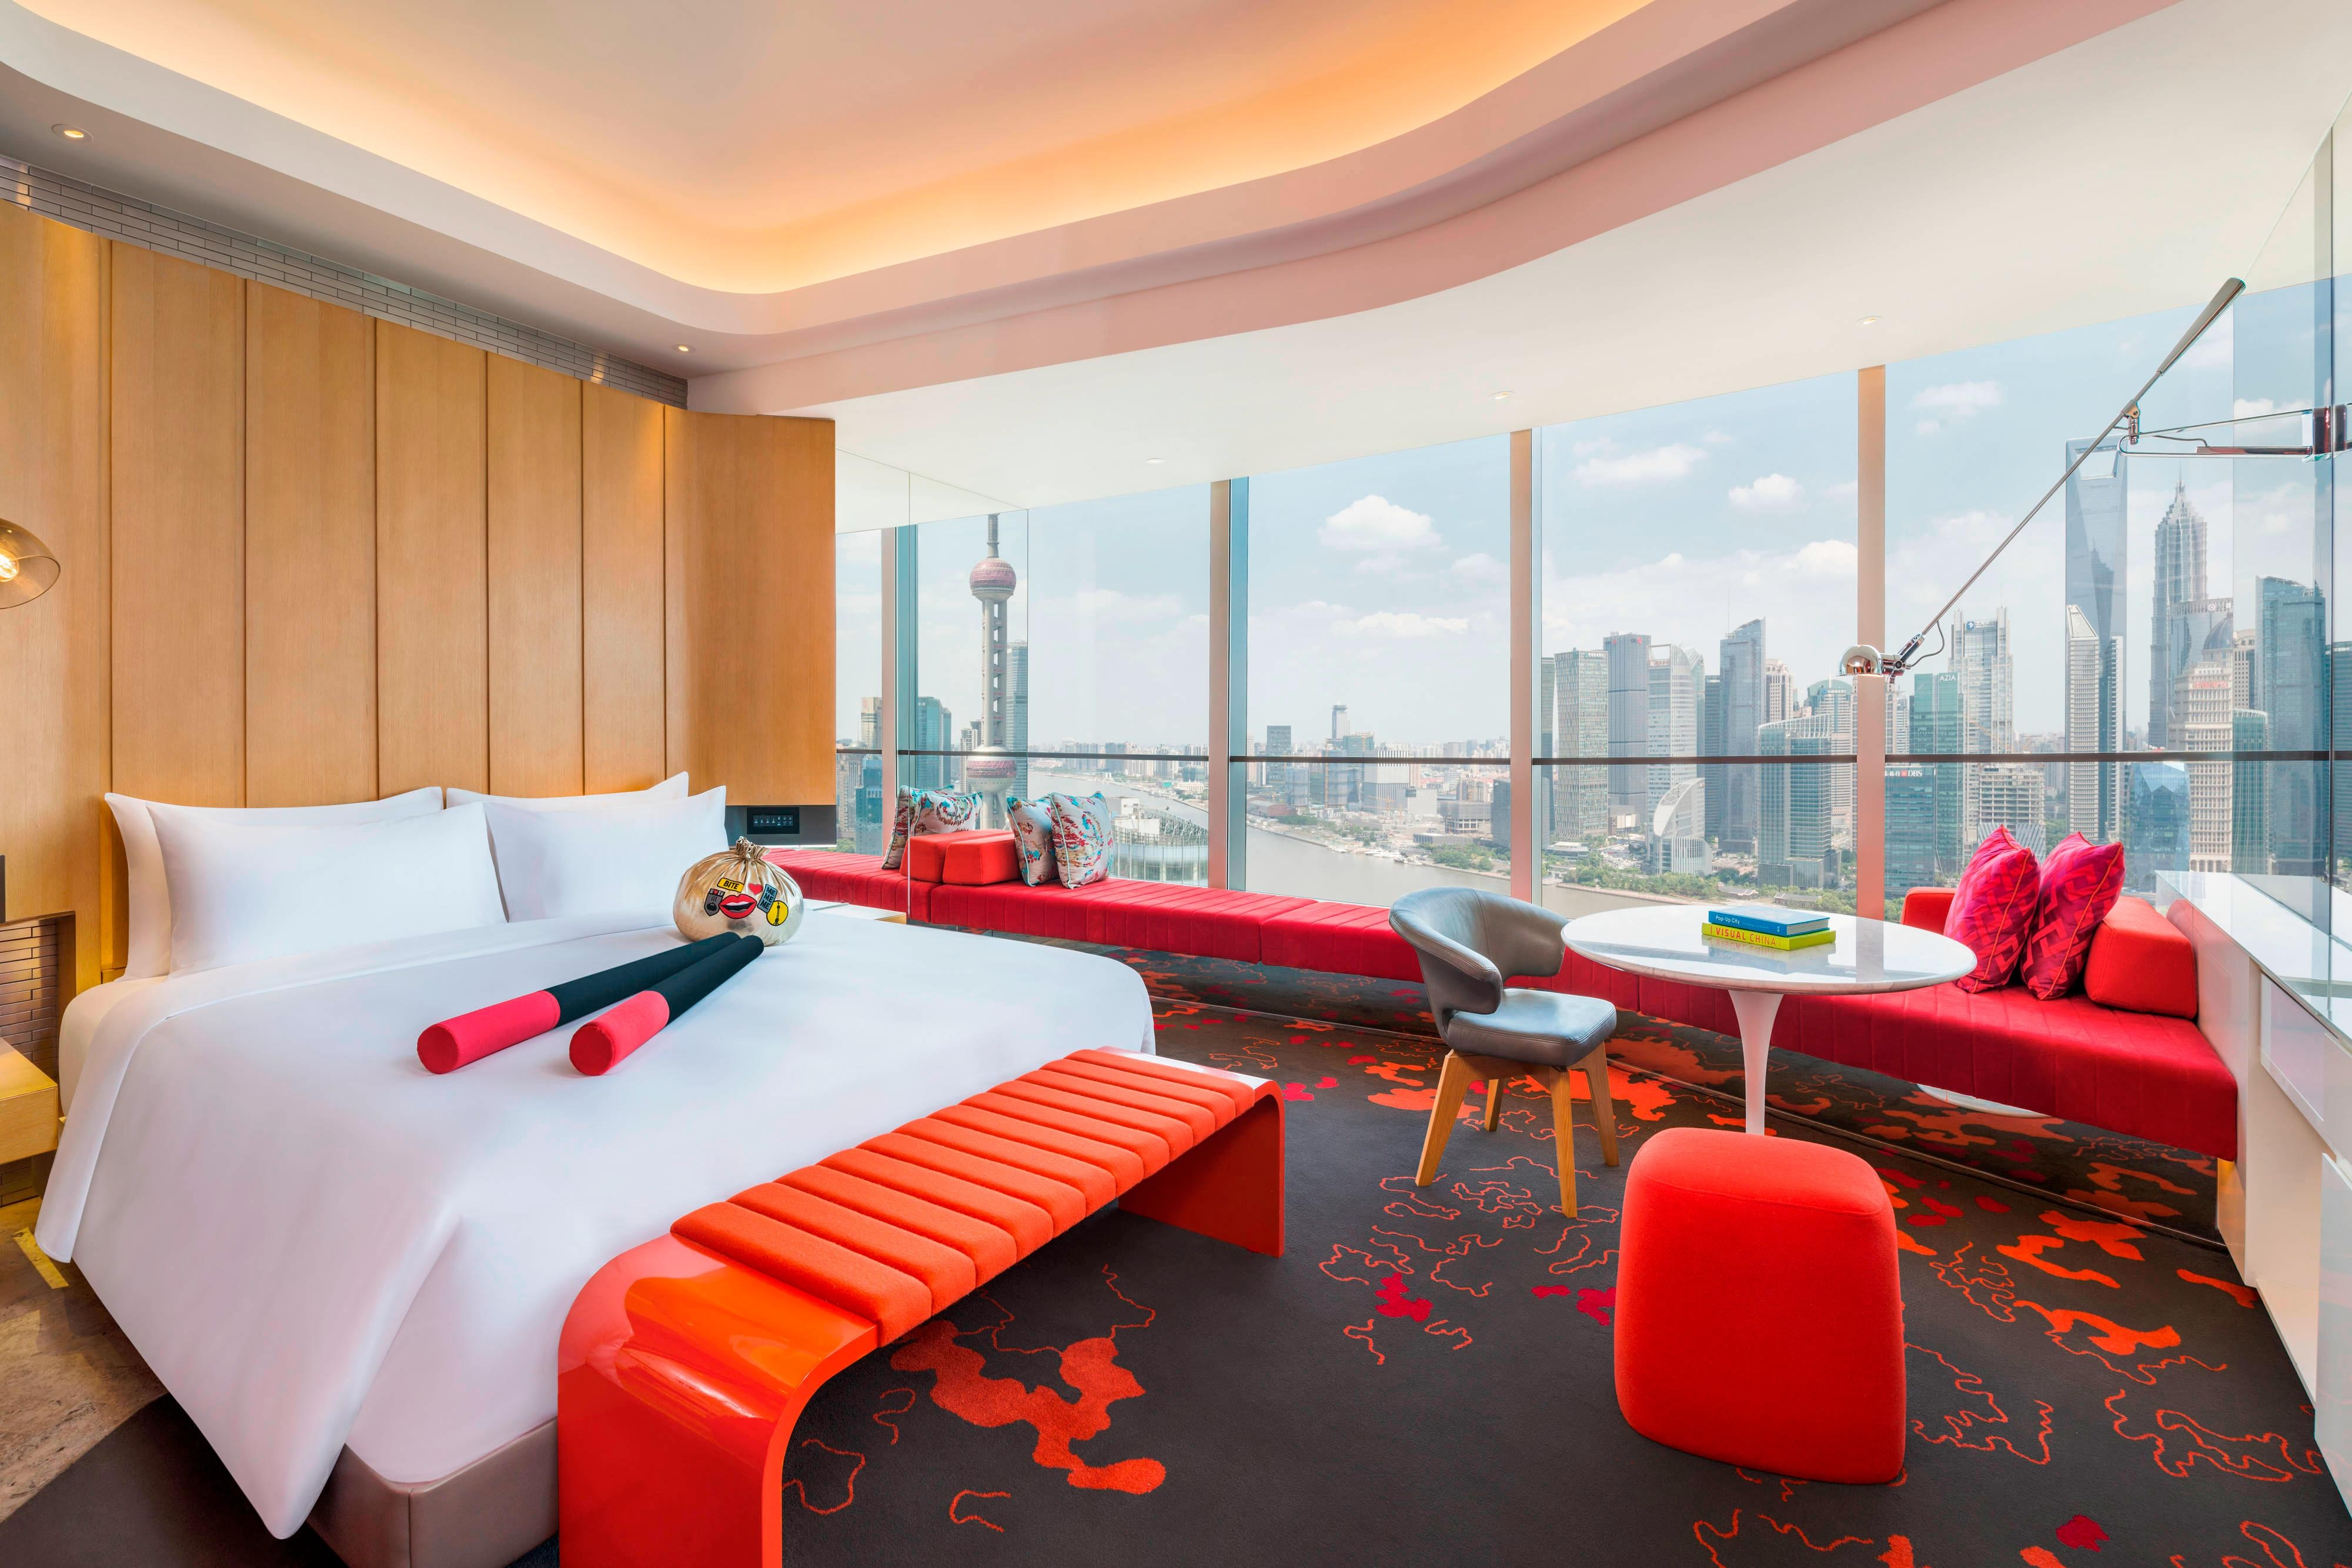 Spectacular Room - Day View